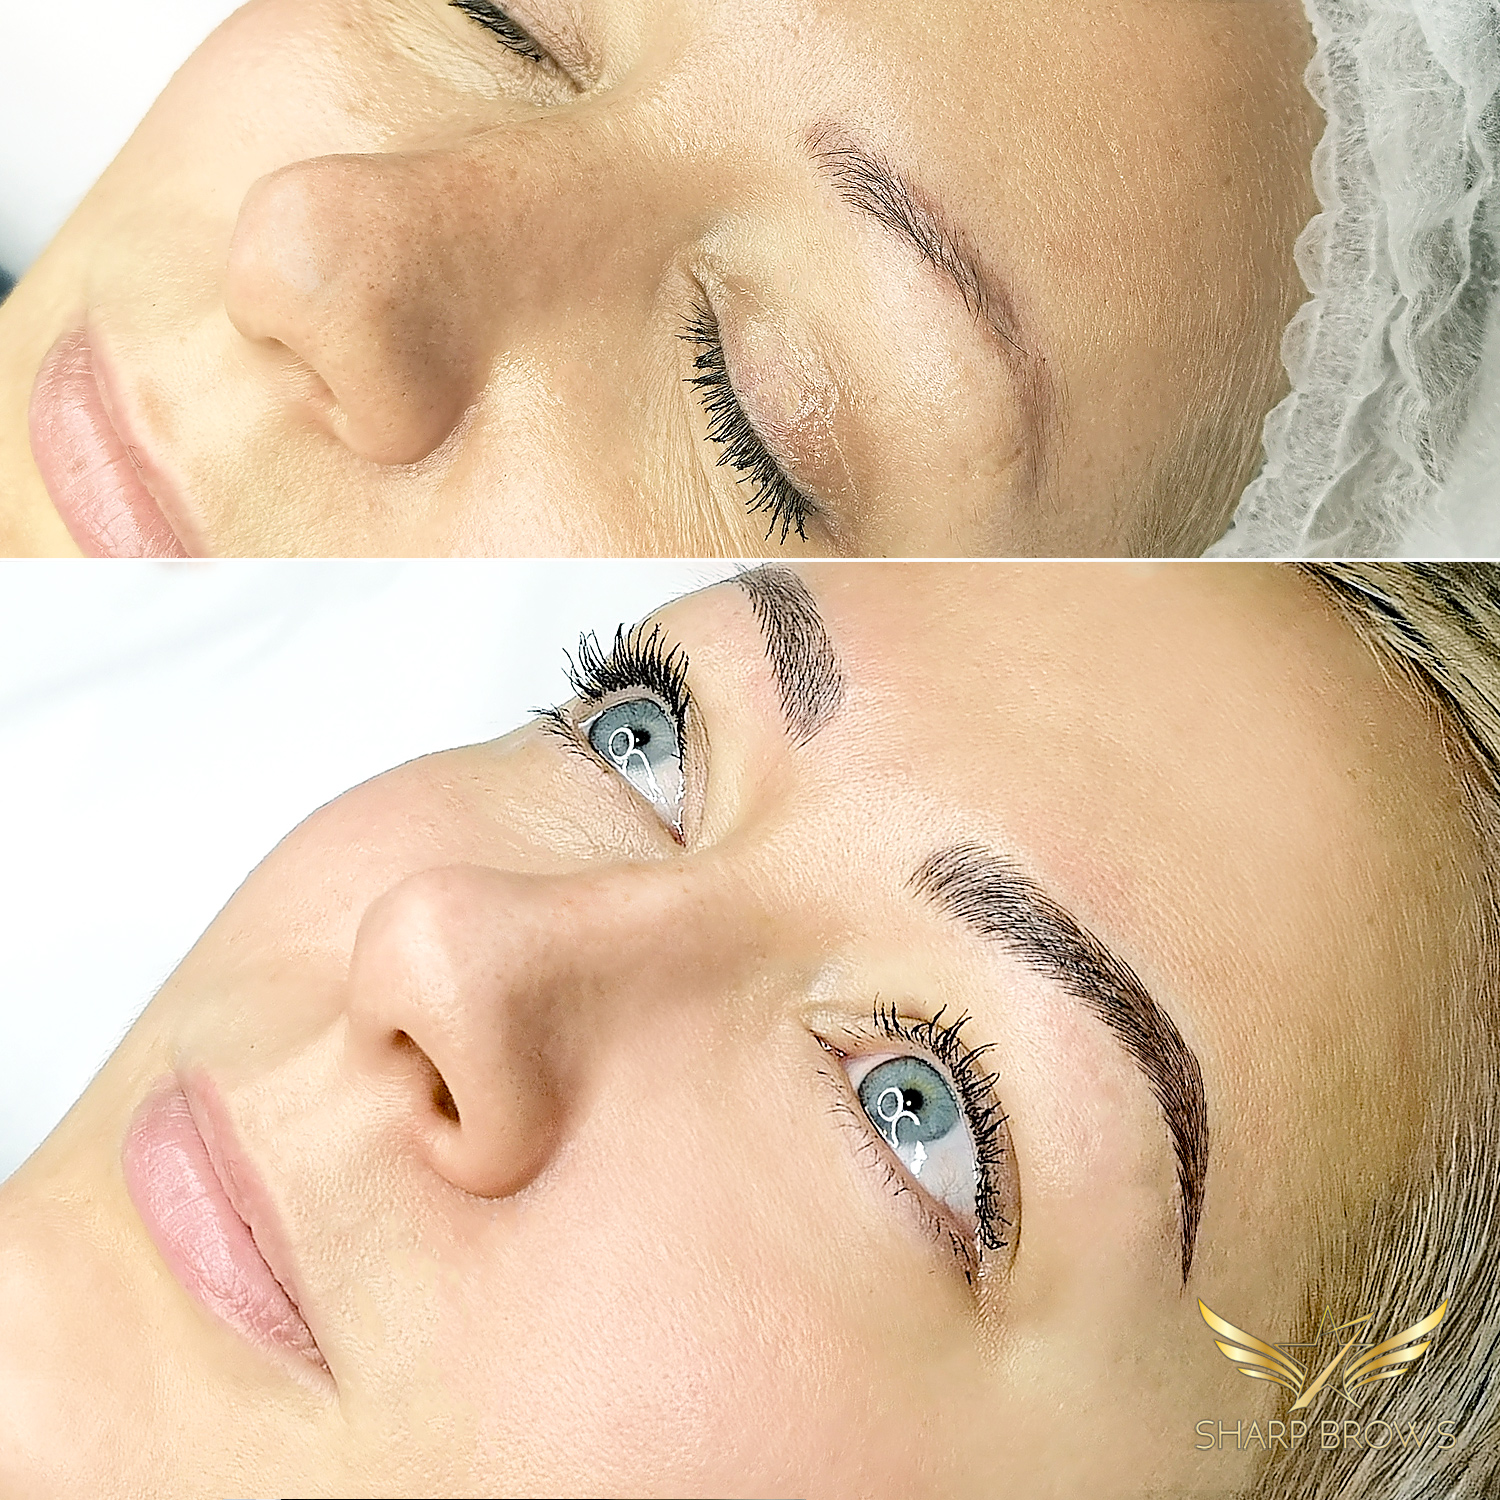 Light microblading. A beautiful lady became stunning after her brow were fixed with Light microblading.